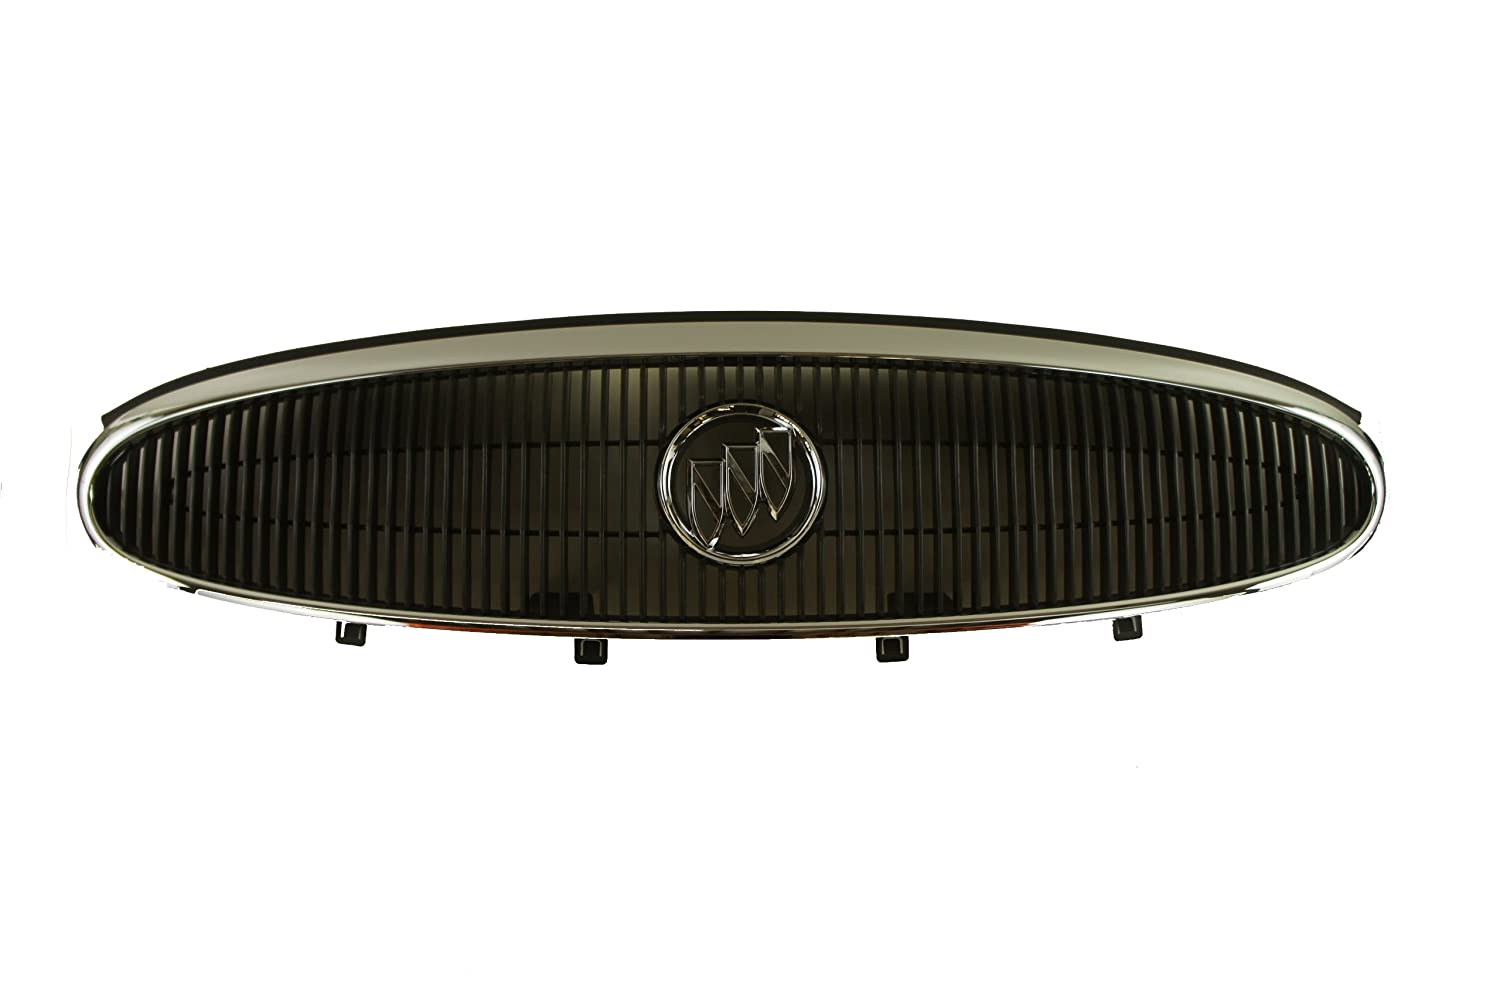 Genuine GM Parts 15792436 Grille Assembly Genuine General Motors Parts